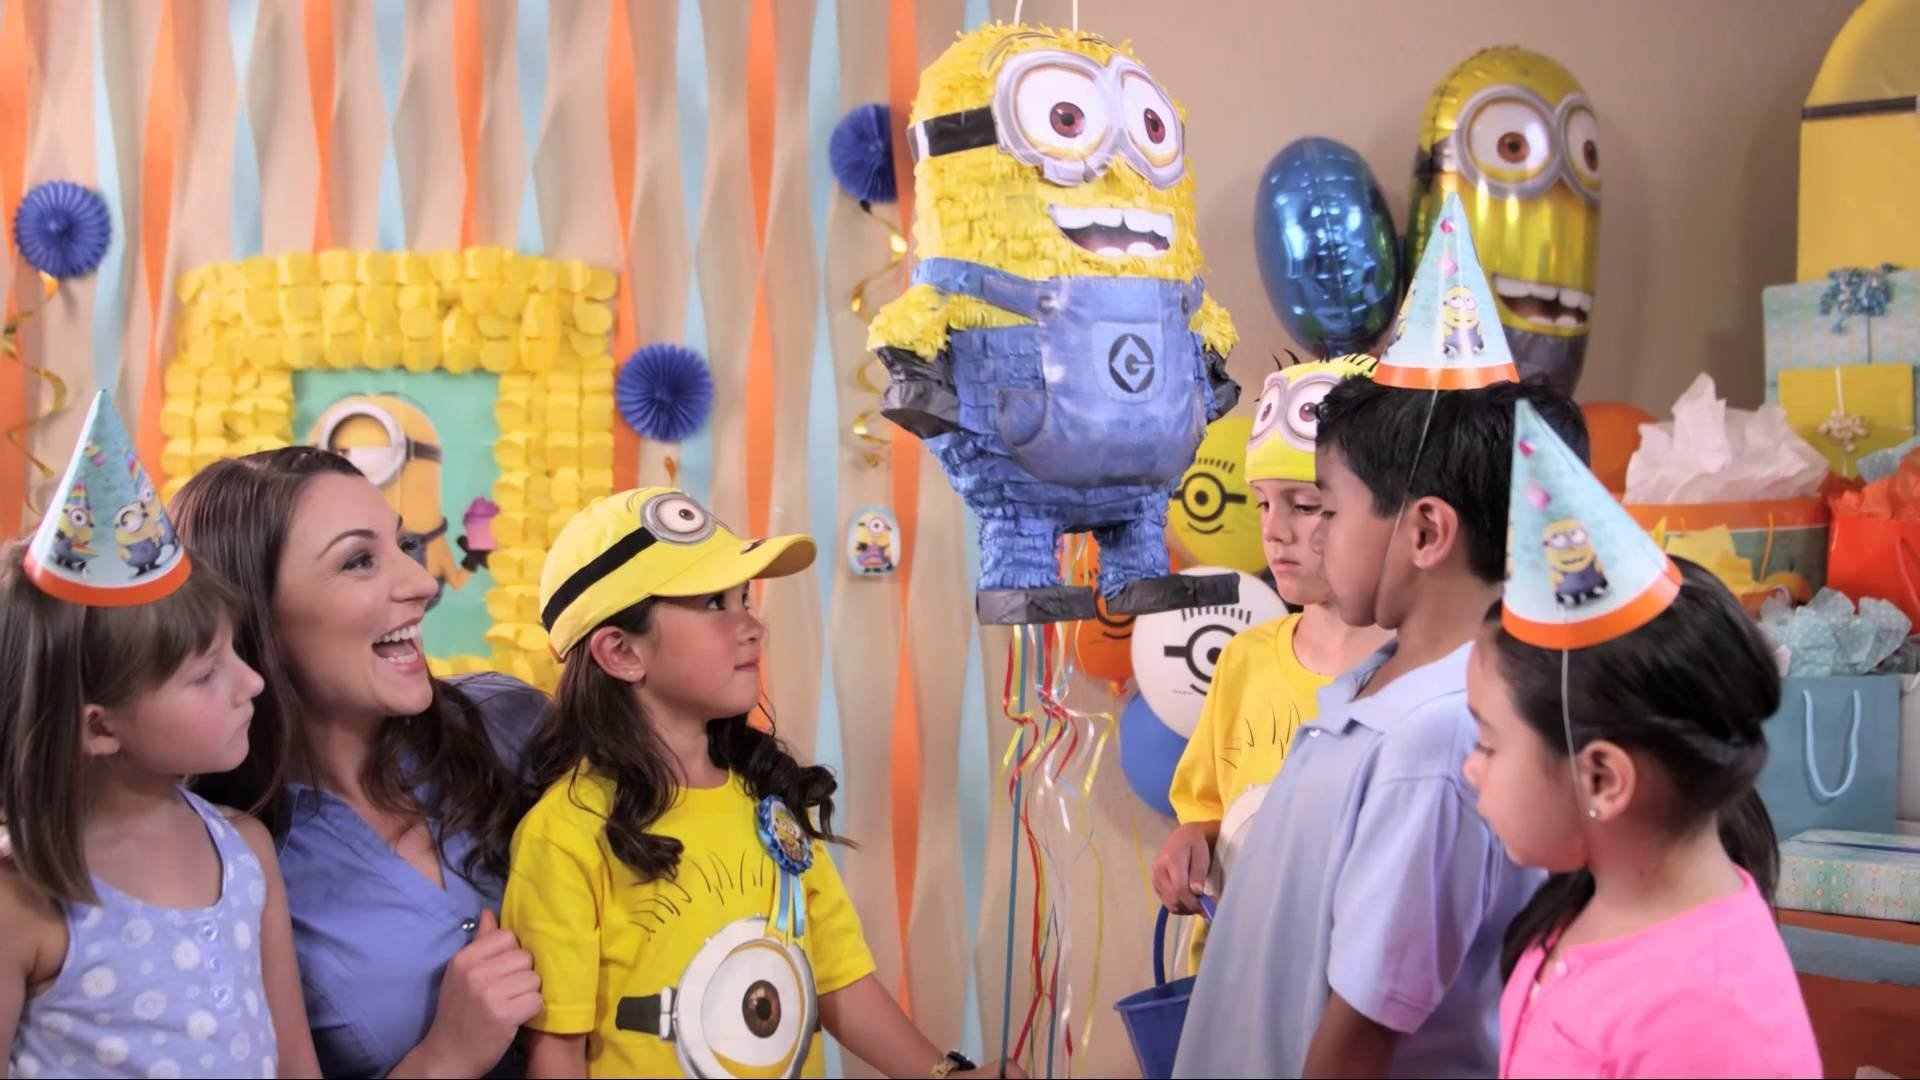 10 Nice Despicable Me 2 Birthday Party Ideas despicable me birthday party ideas youtube 1 2020